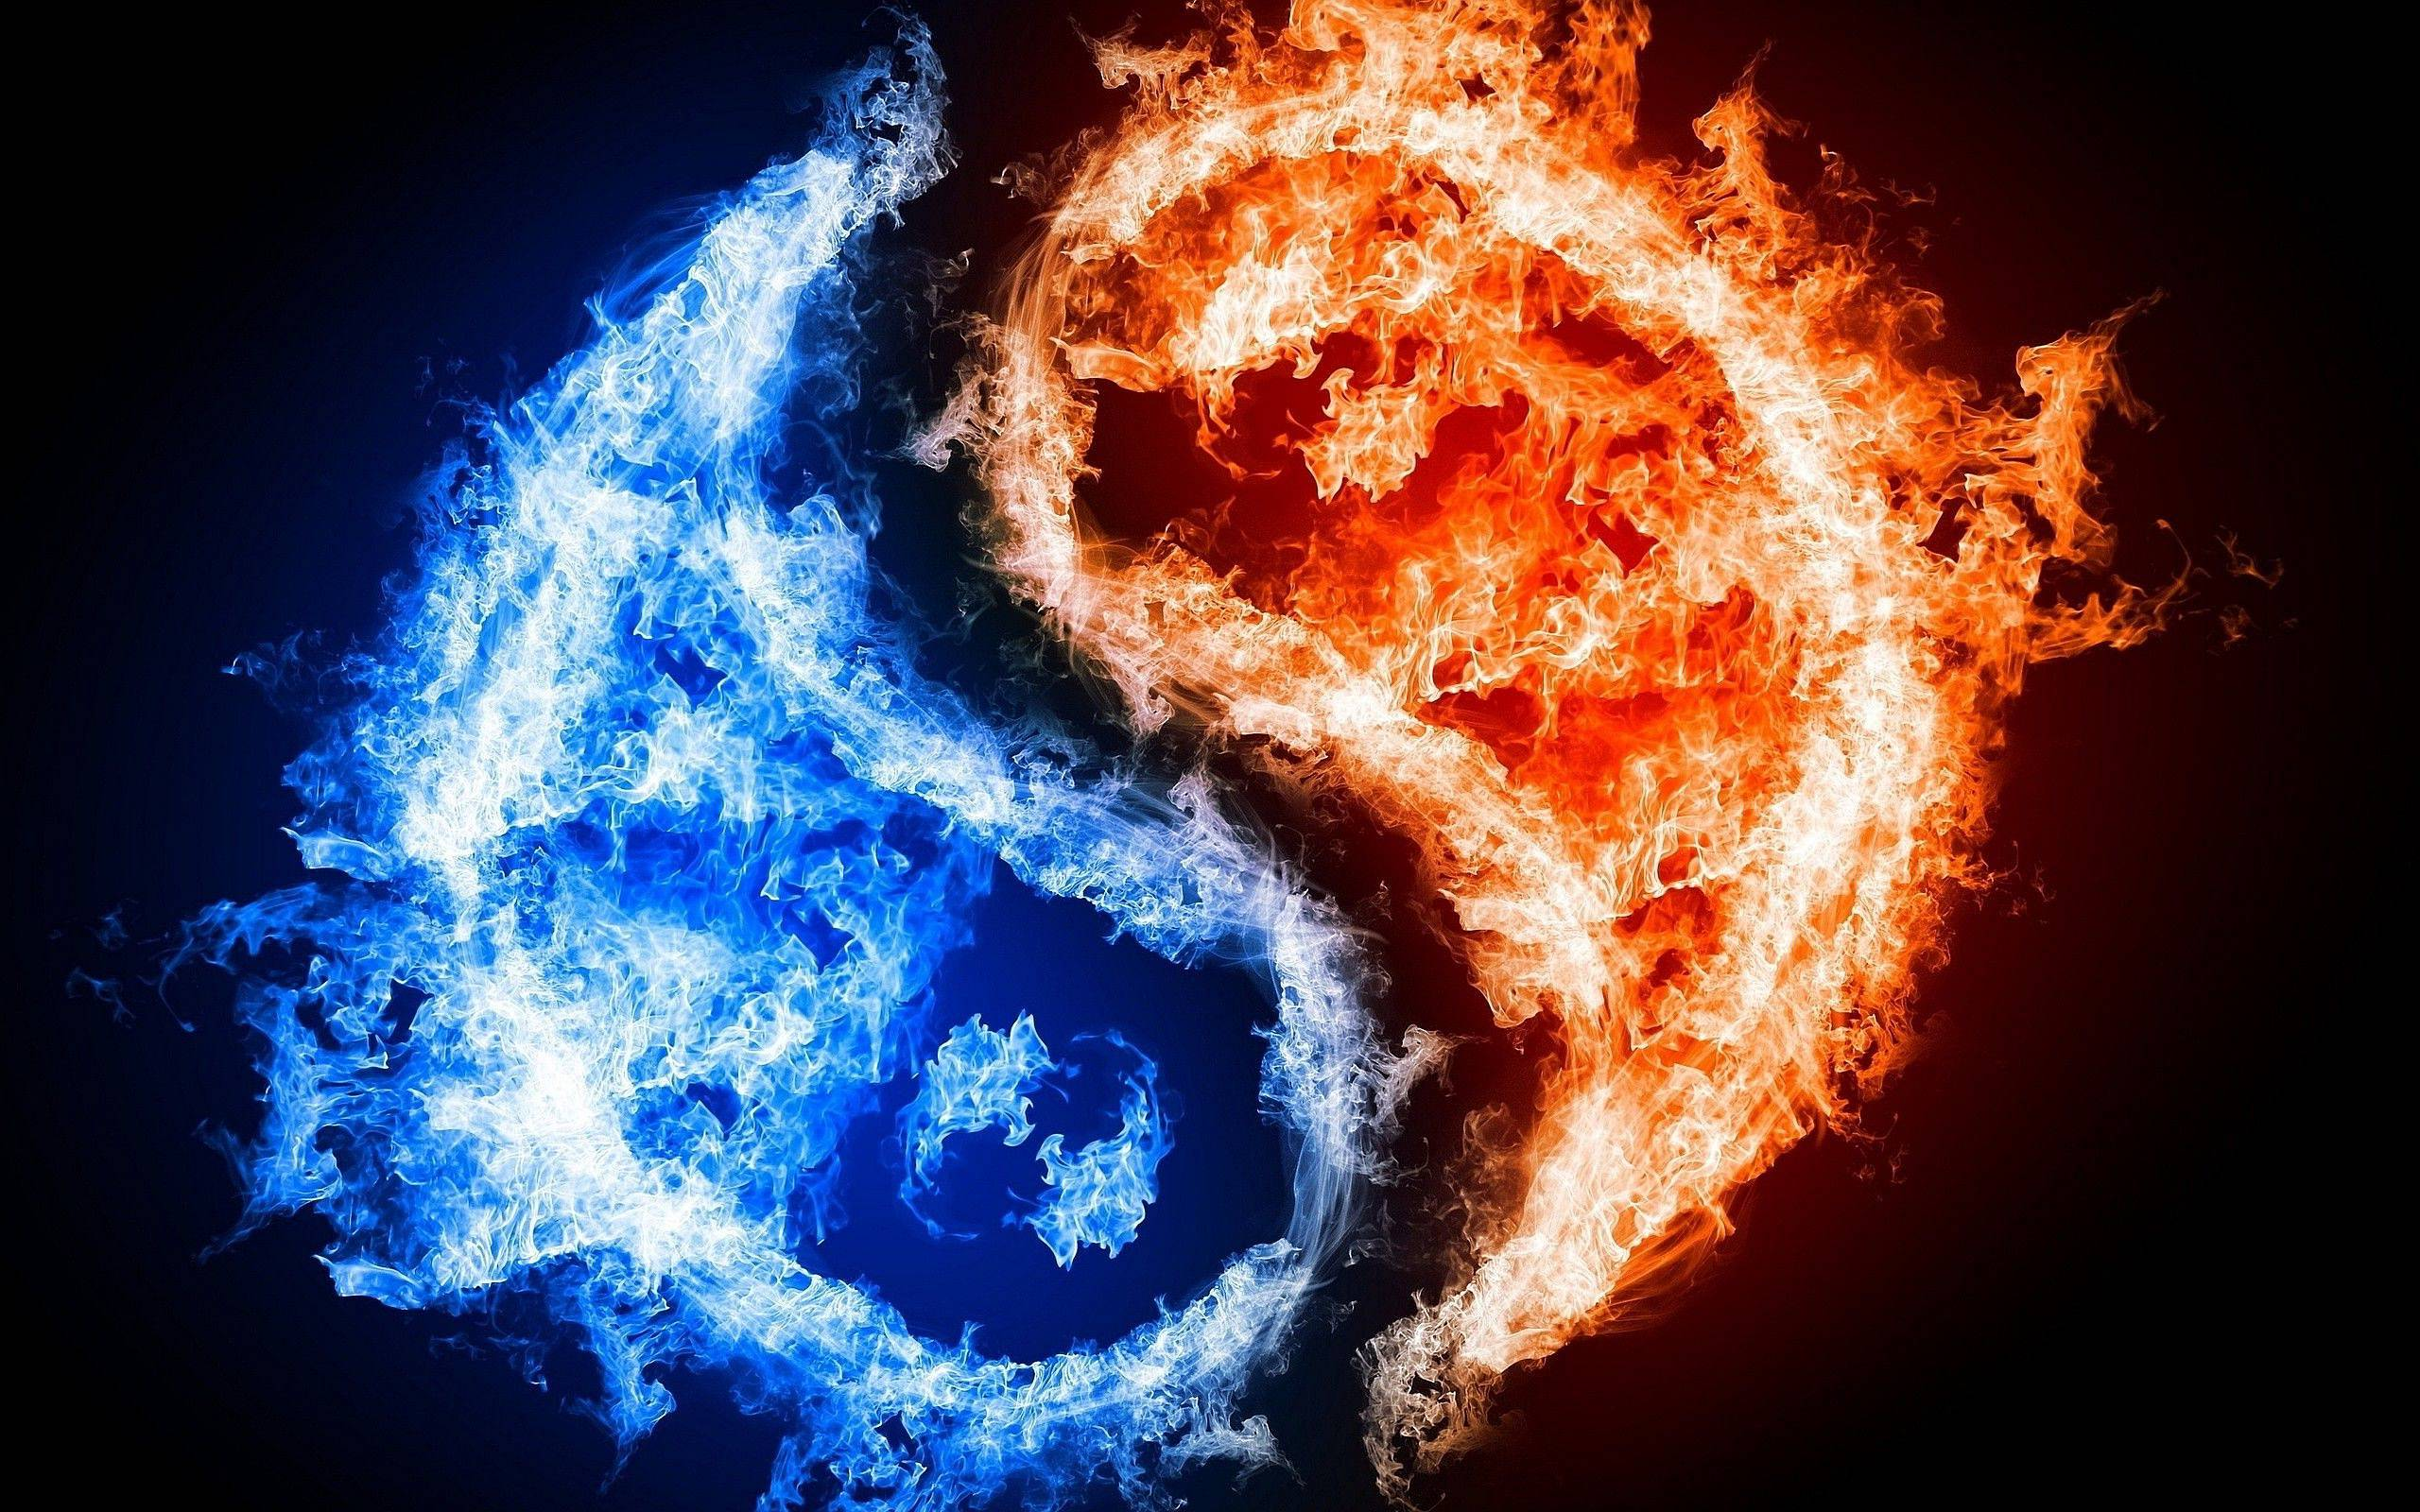 Yin Yang Fire Ice Wallpapers